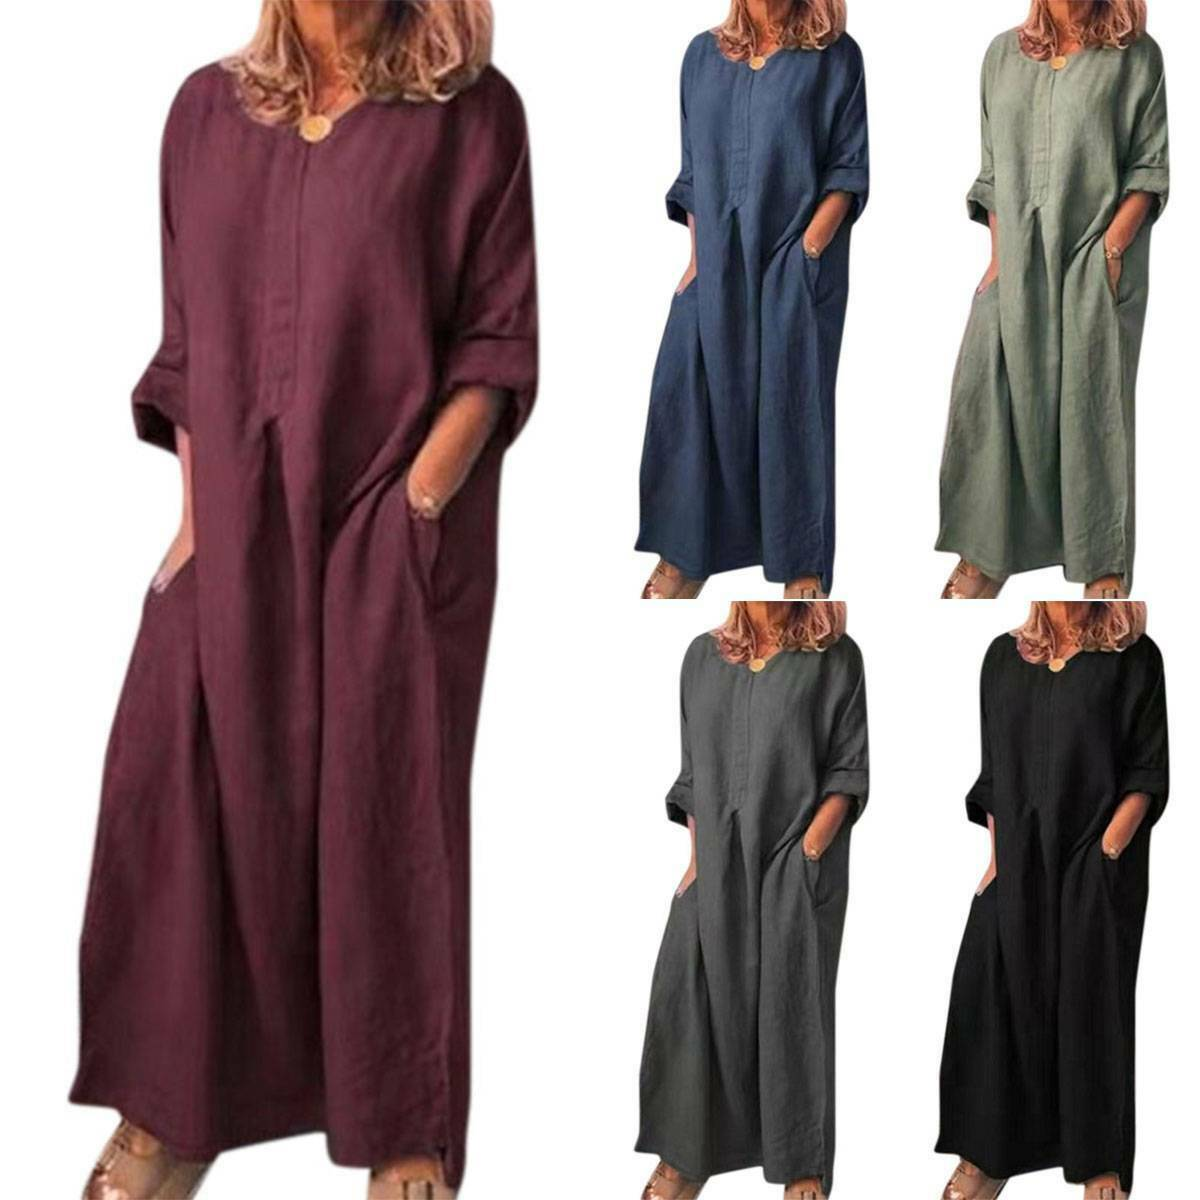 Plus Size Womens Casual Cotton Linen Kaftan Maxi Long Dress Loose Party Dresses